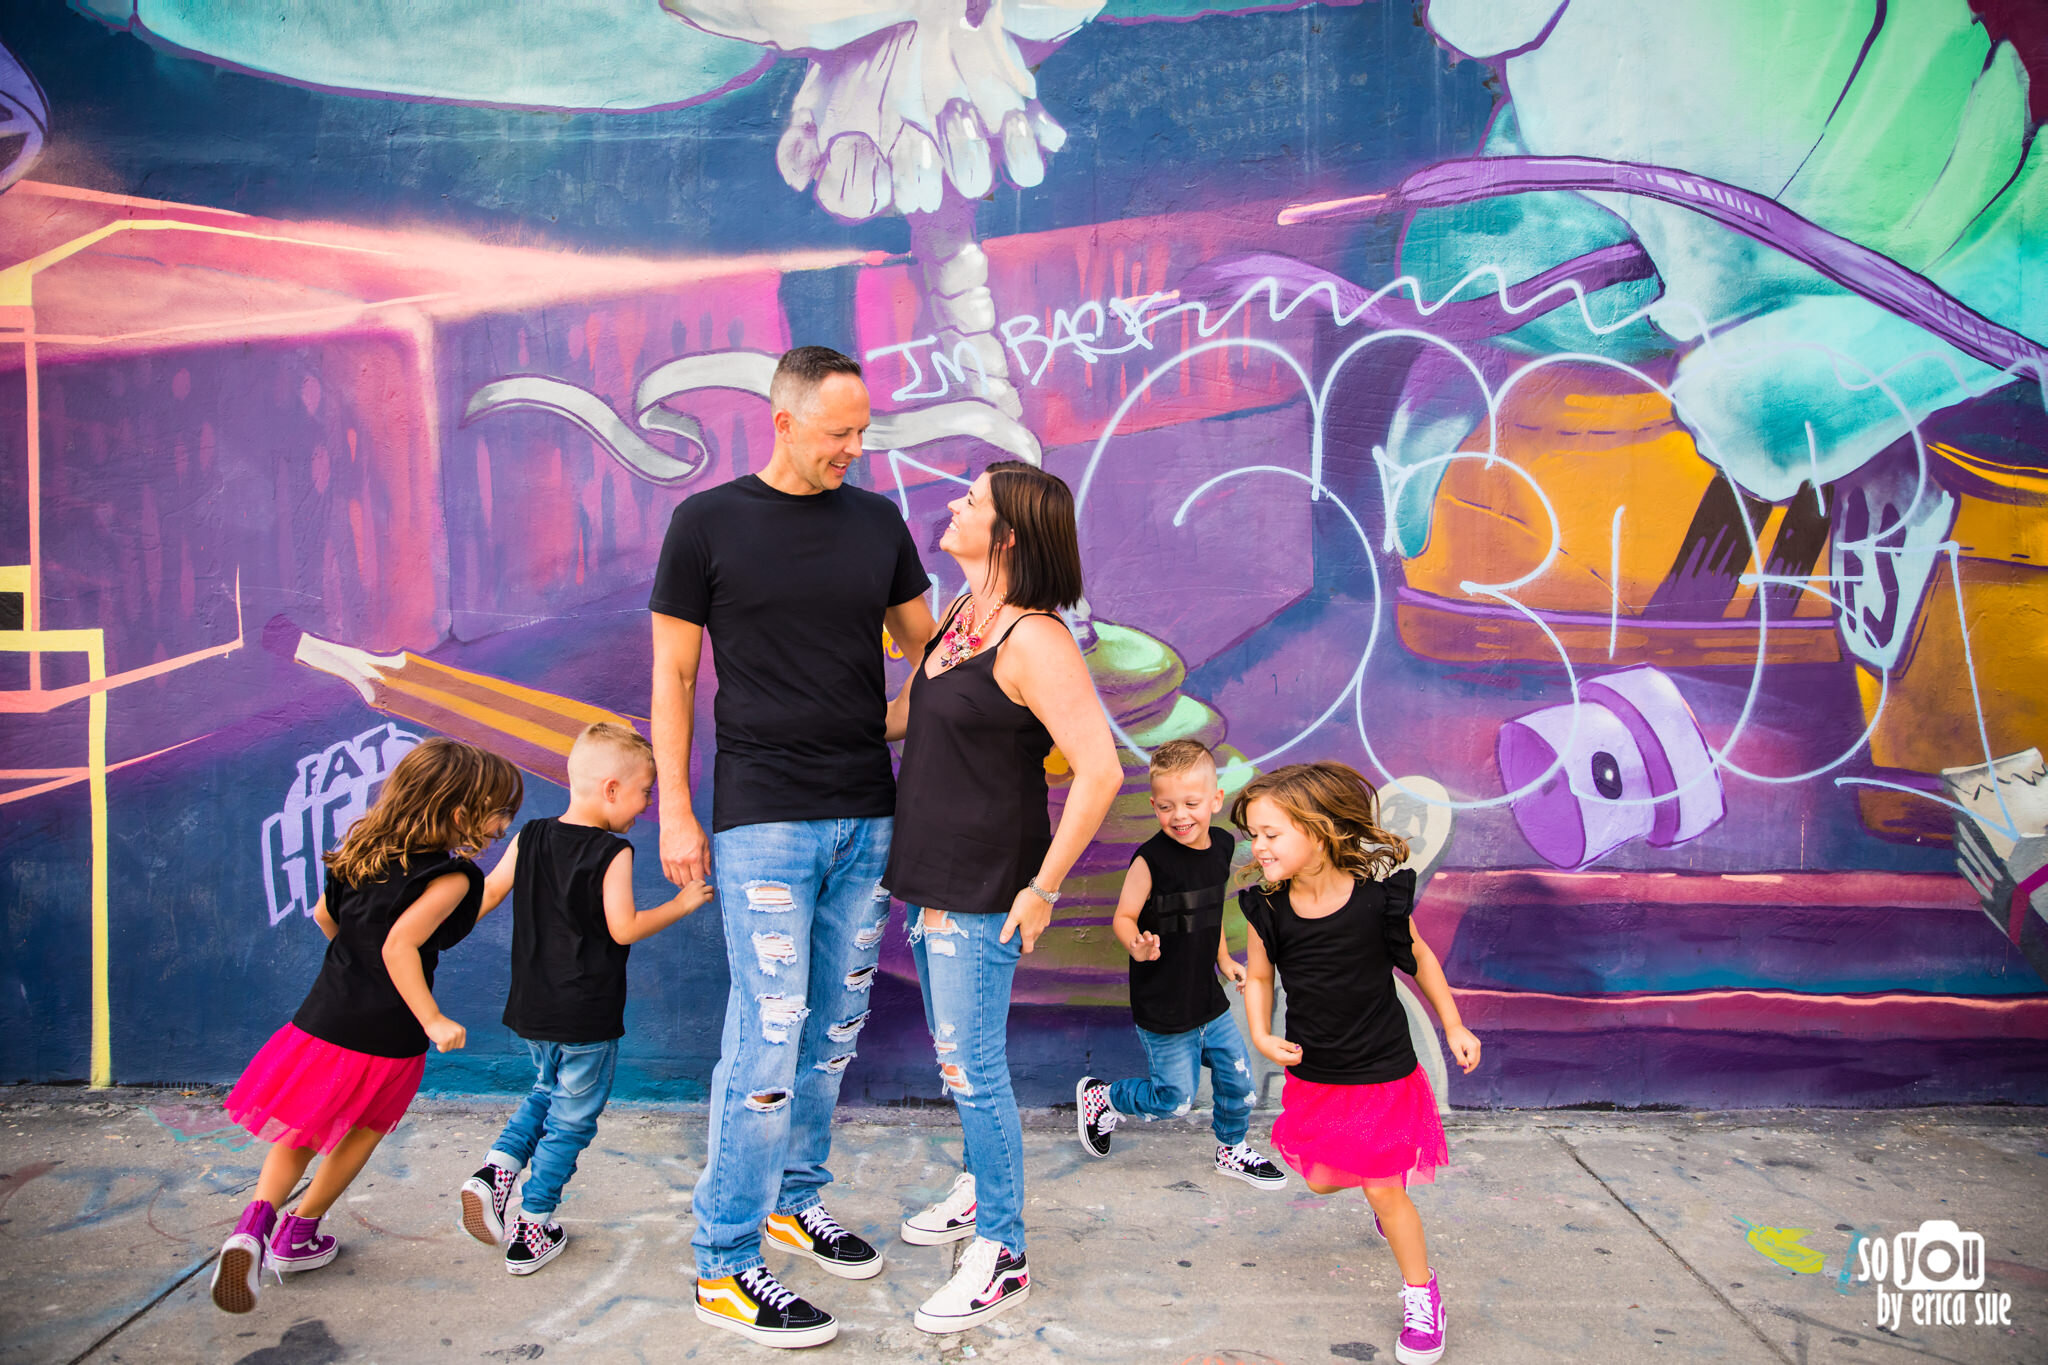 so-you-by-erica-wynwood-walls-lifestyle-family-photographer-session-.JPG